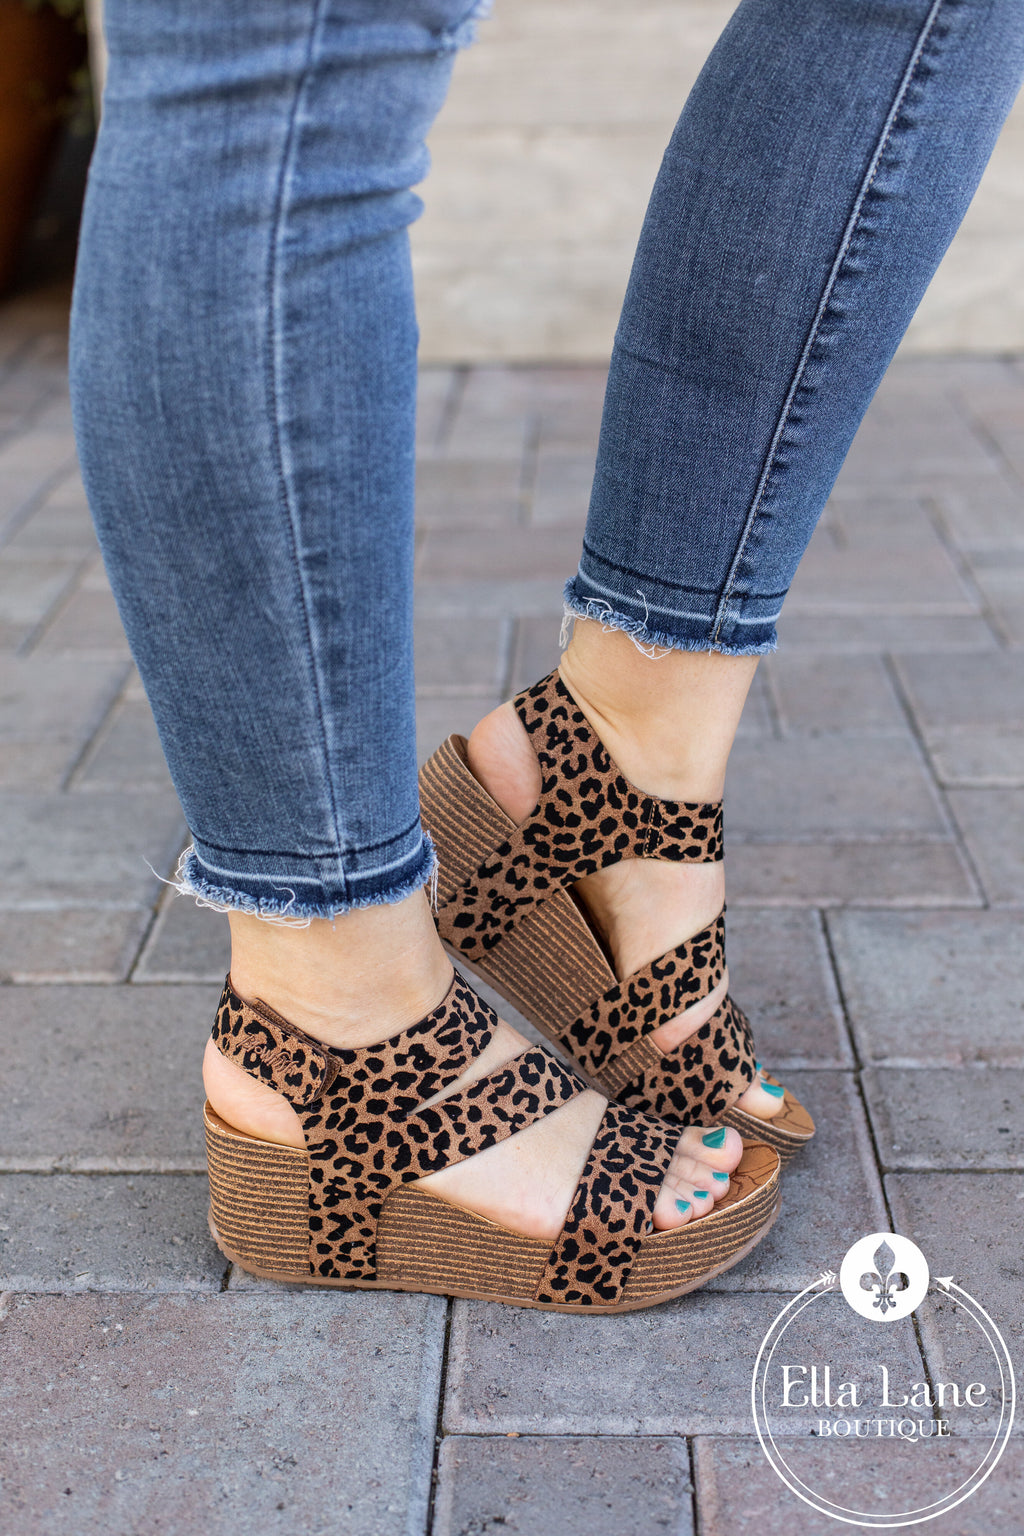 Blowfish Leelee Wedge Sandals - Caramel Leopard FINAL SALE